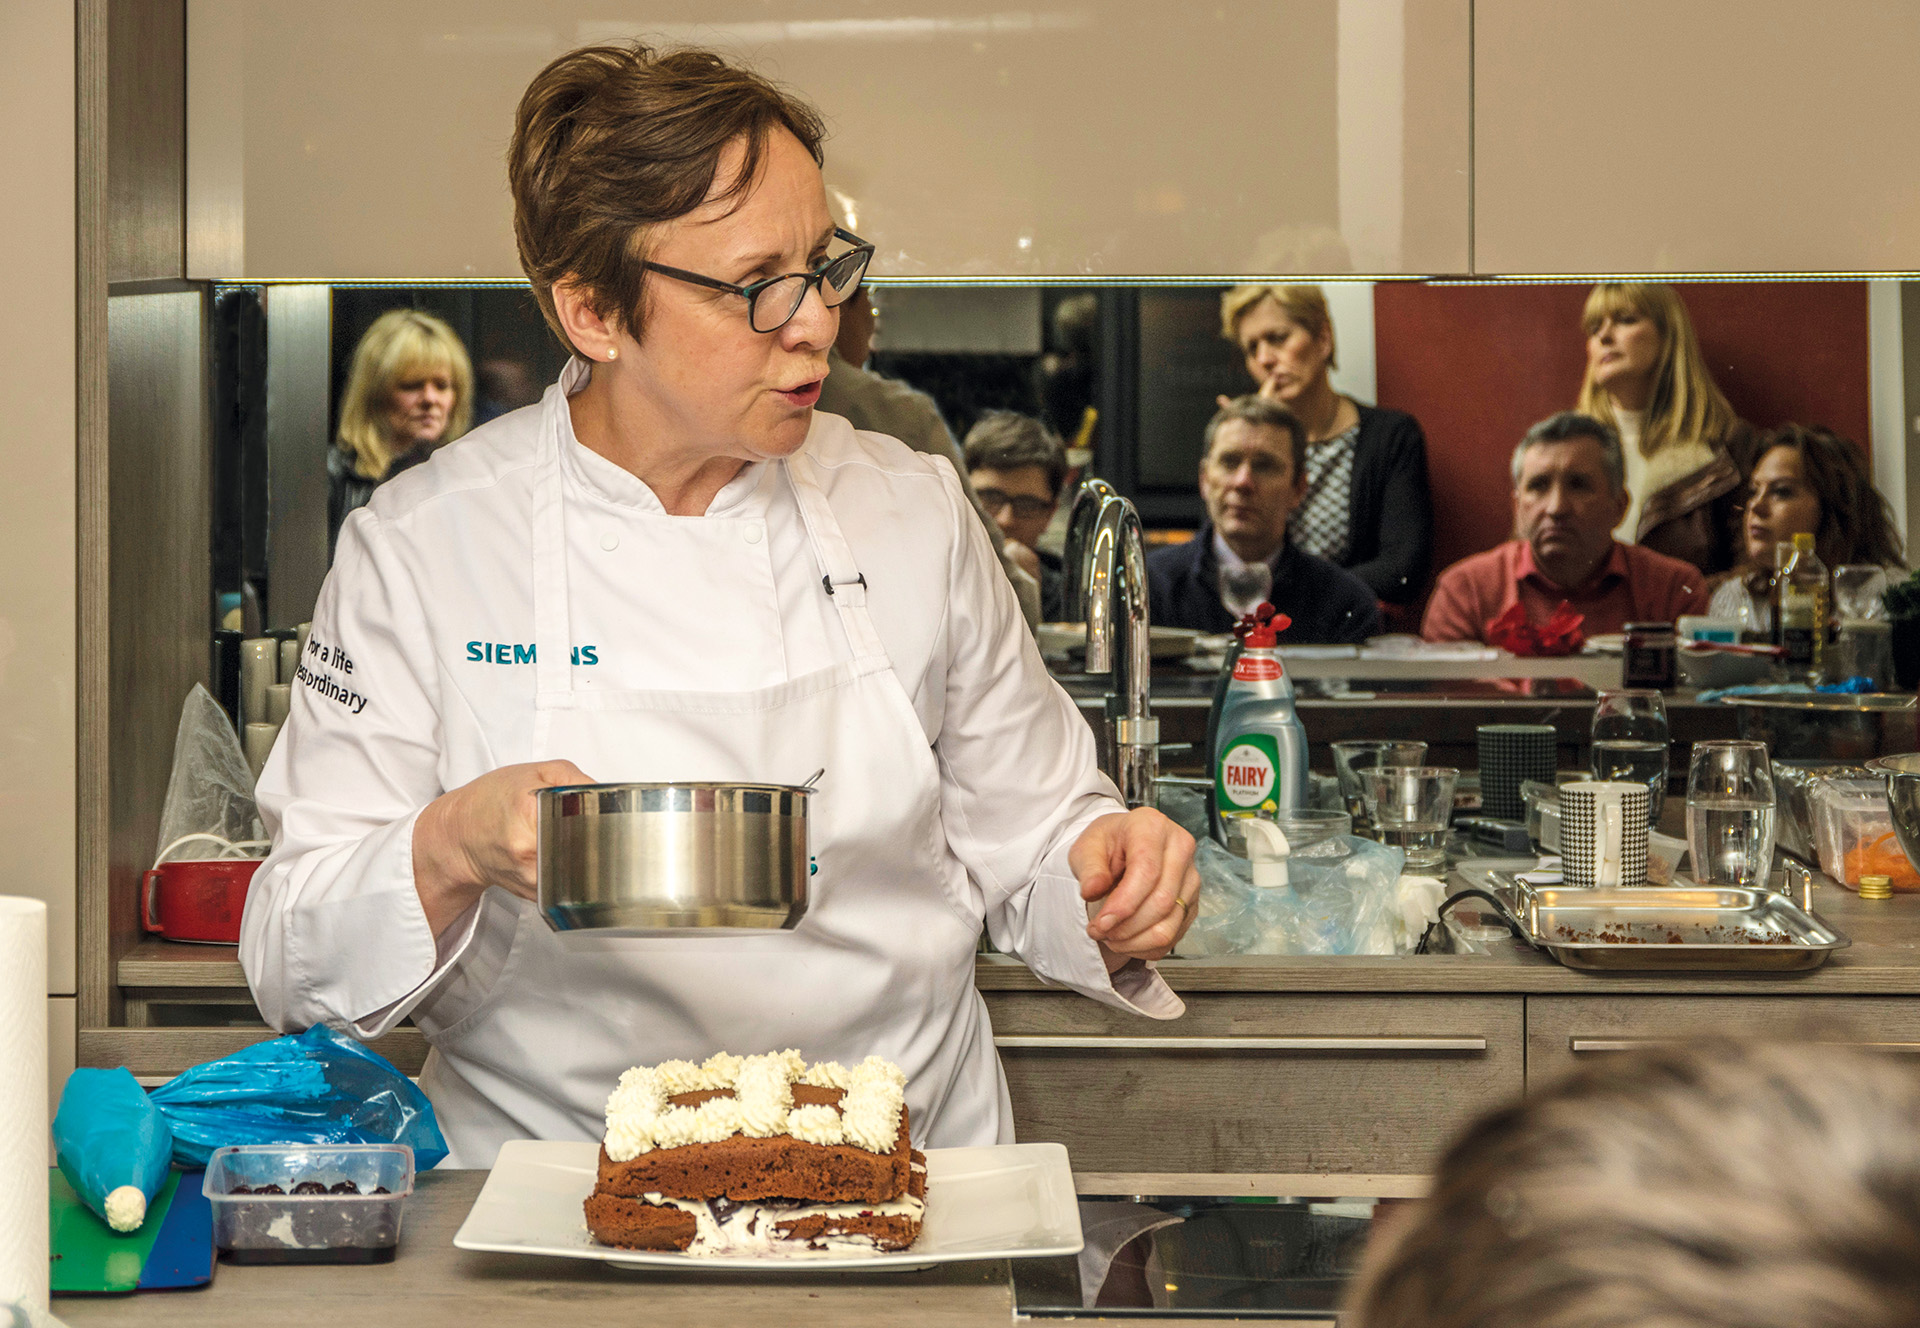 Siemens ovens demonstrated by Sharon Dosworth